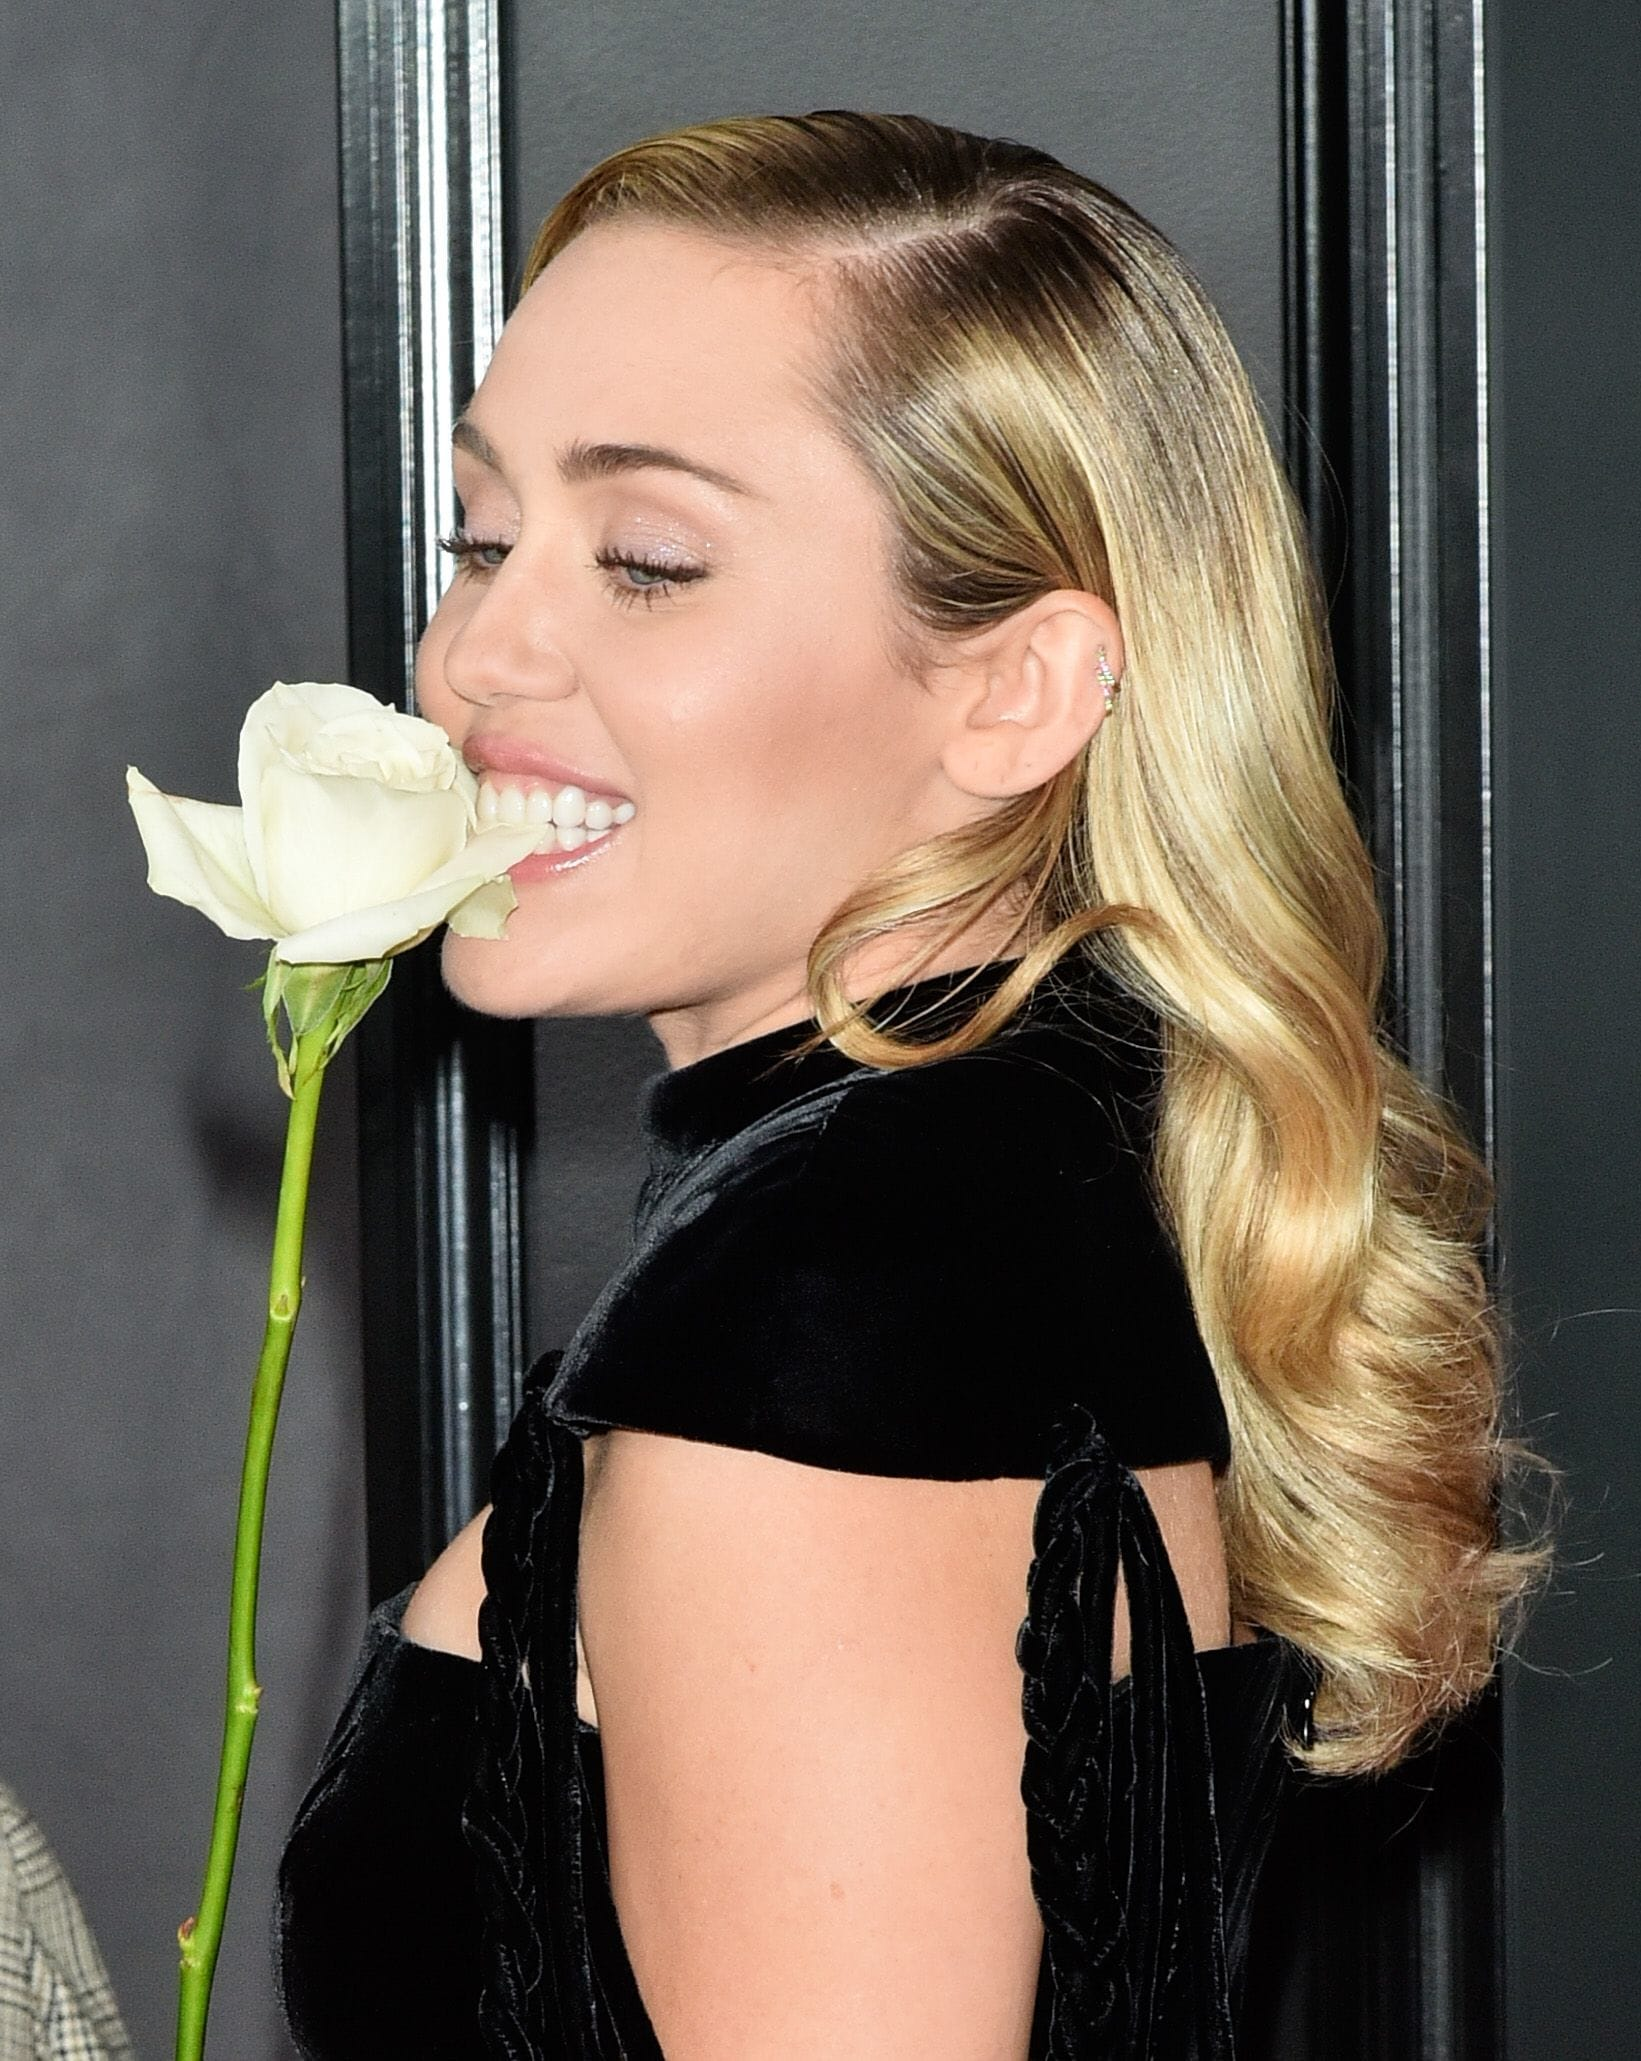 Grammy 2018 miley cyrus blonde long hair with curls at the ends